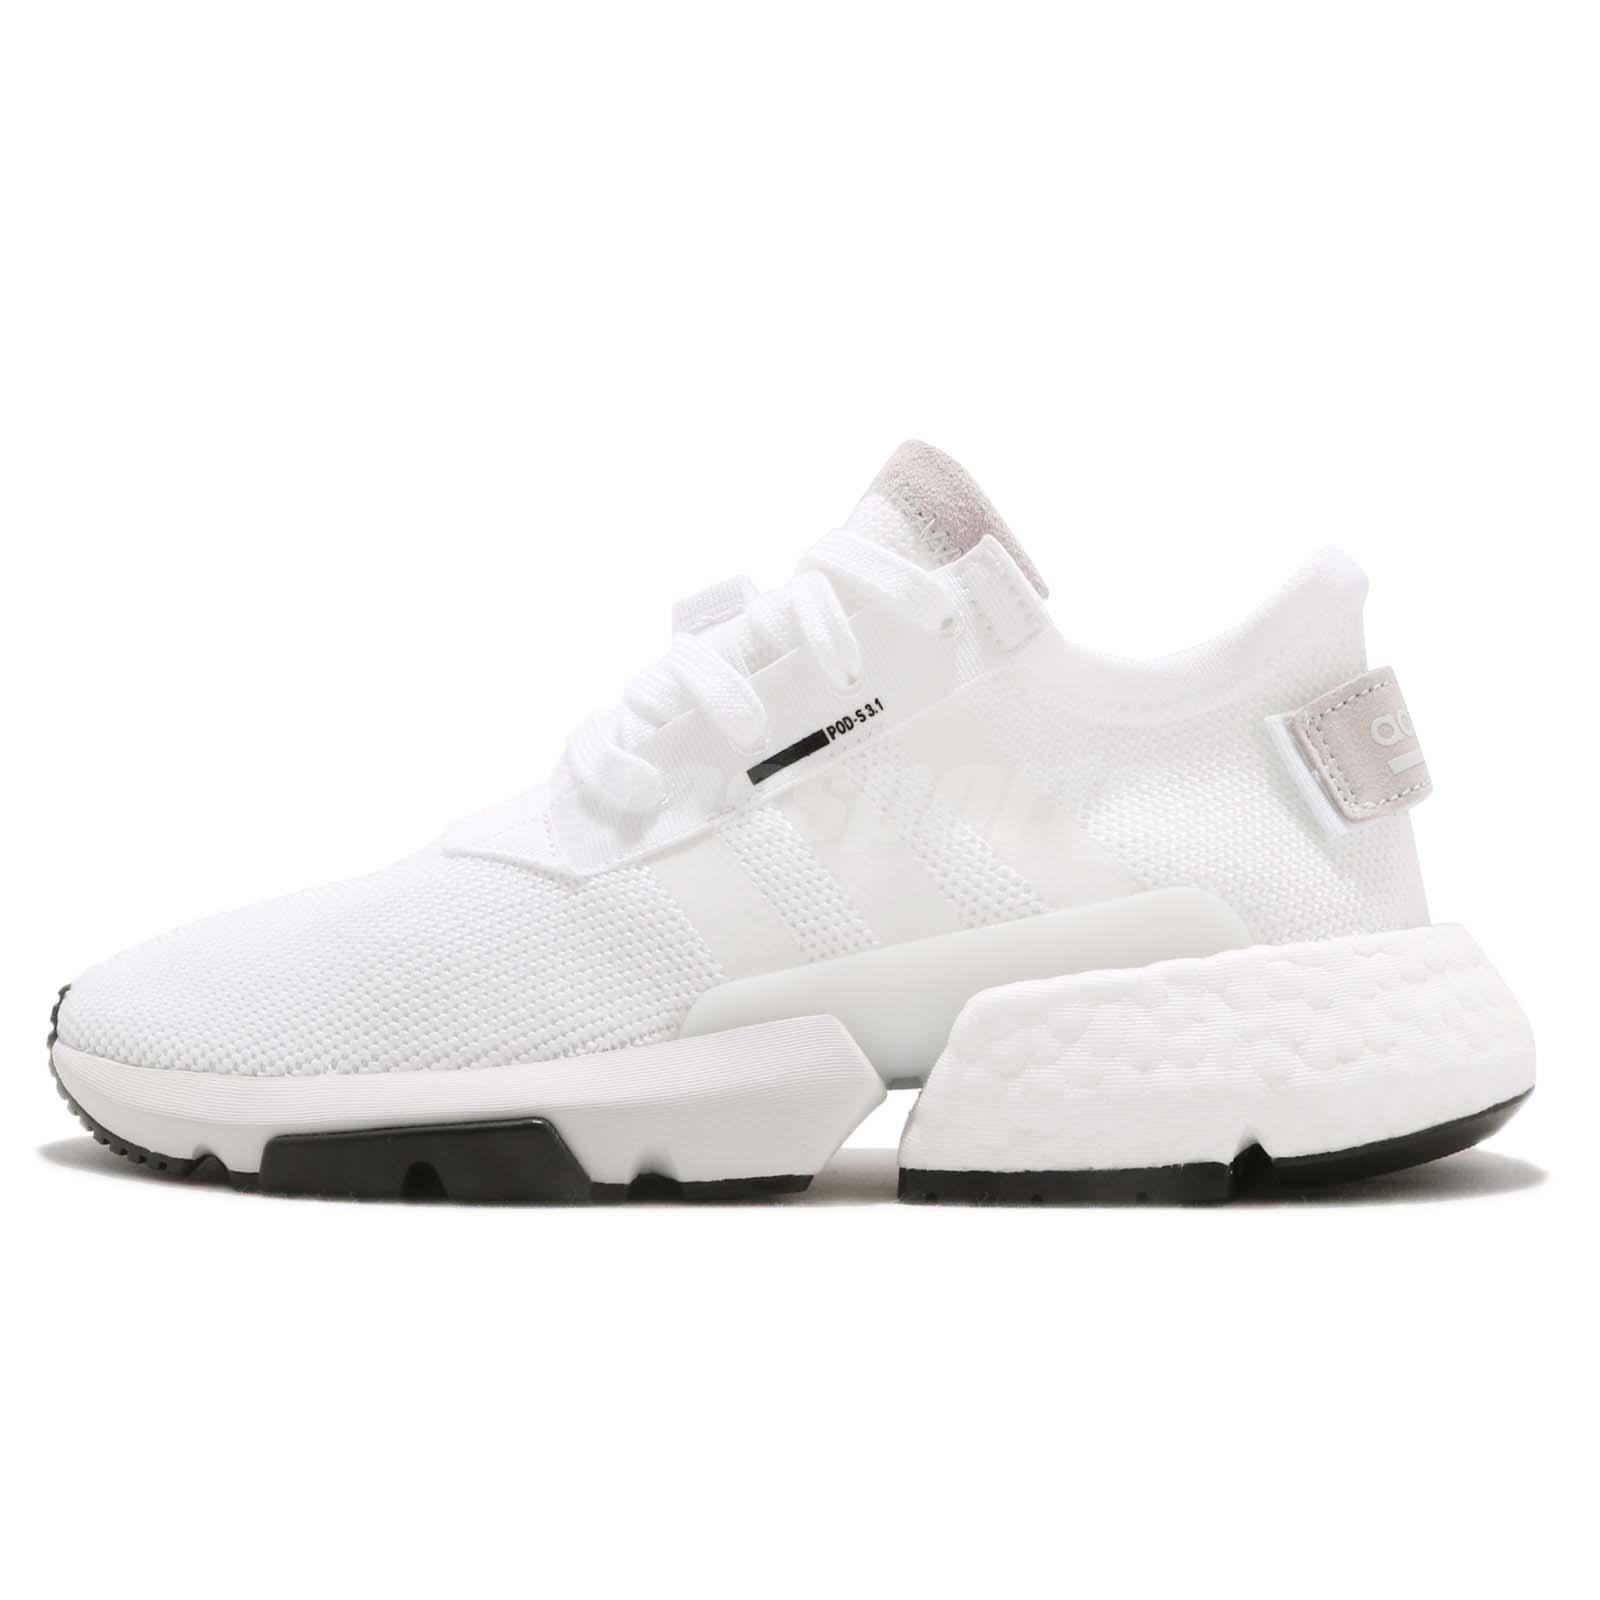 Details about adidas POD-S3.1 W Cloud White BOOST Womens Running Shoes  Sneakers B37459 b9c83e84b